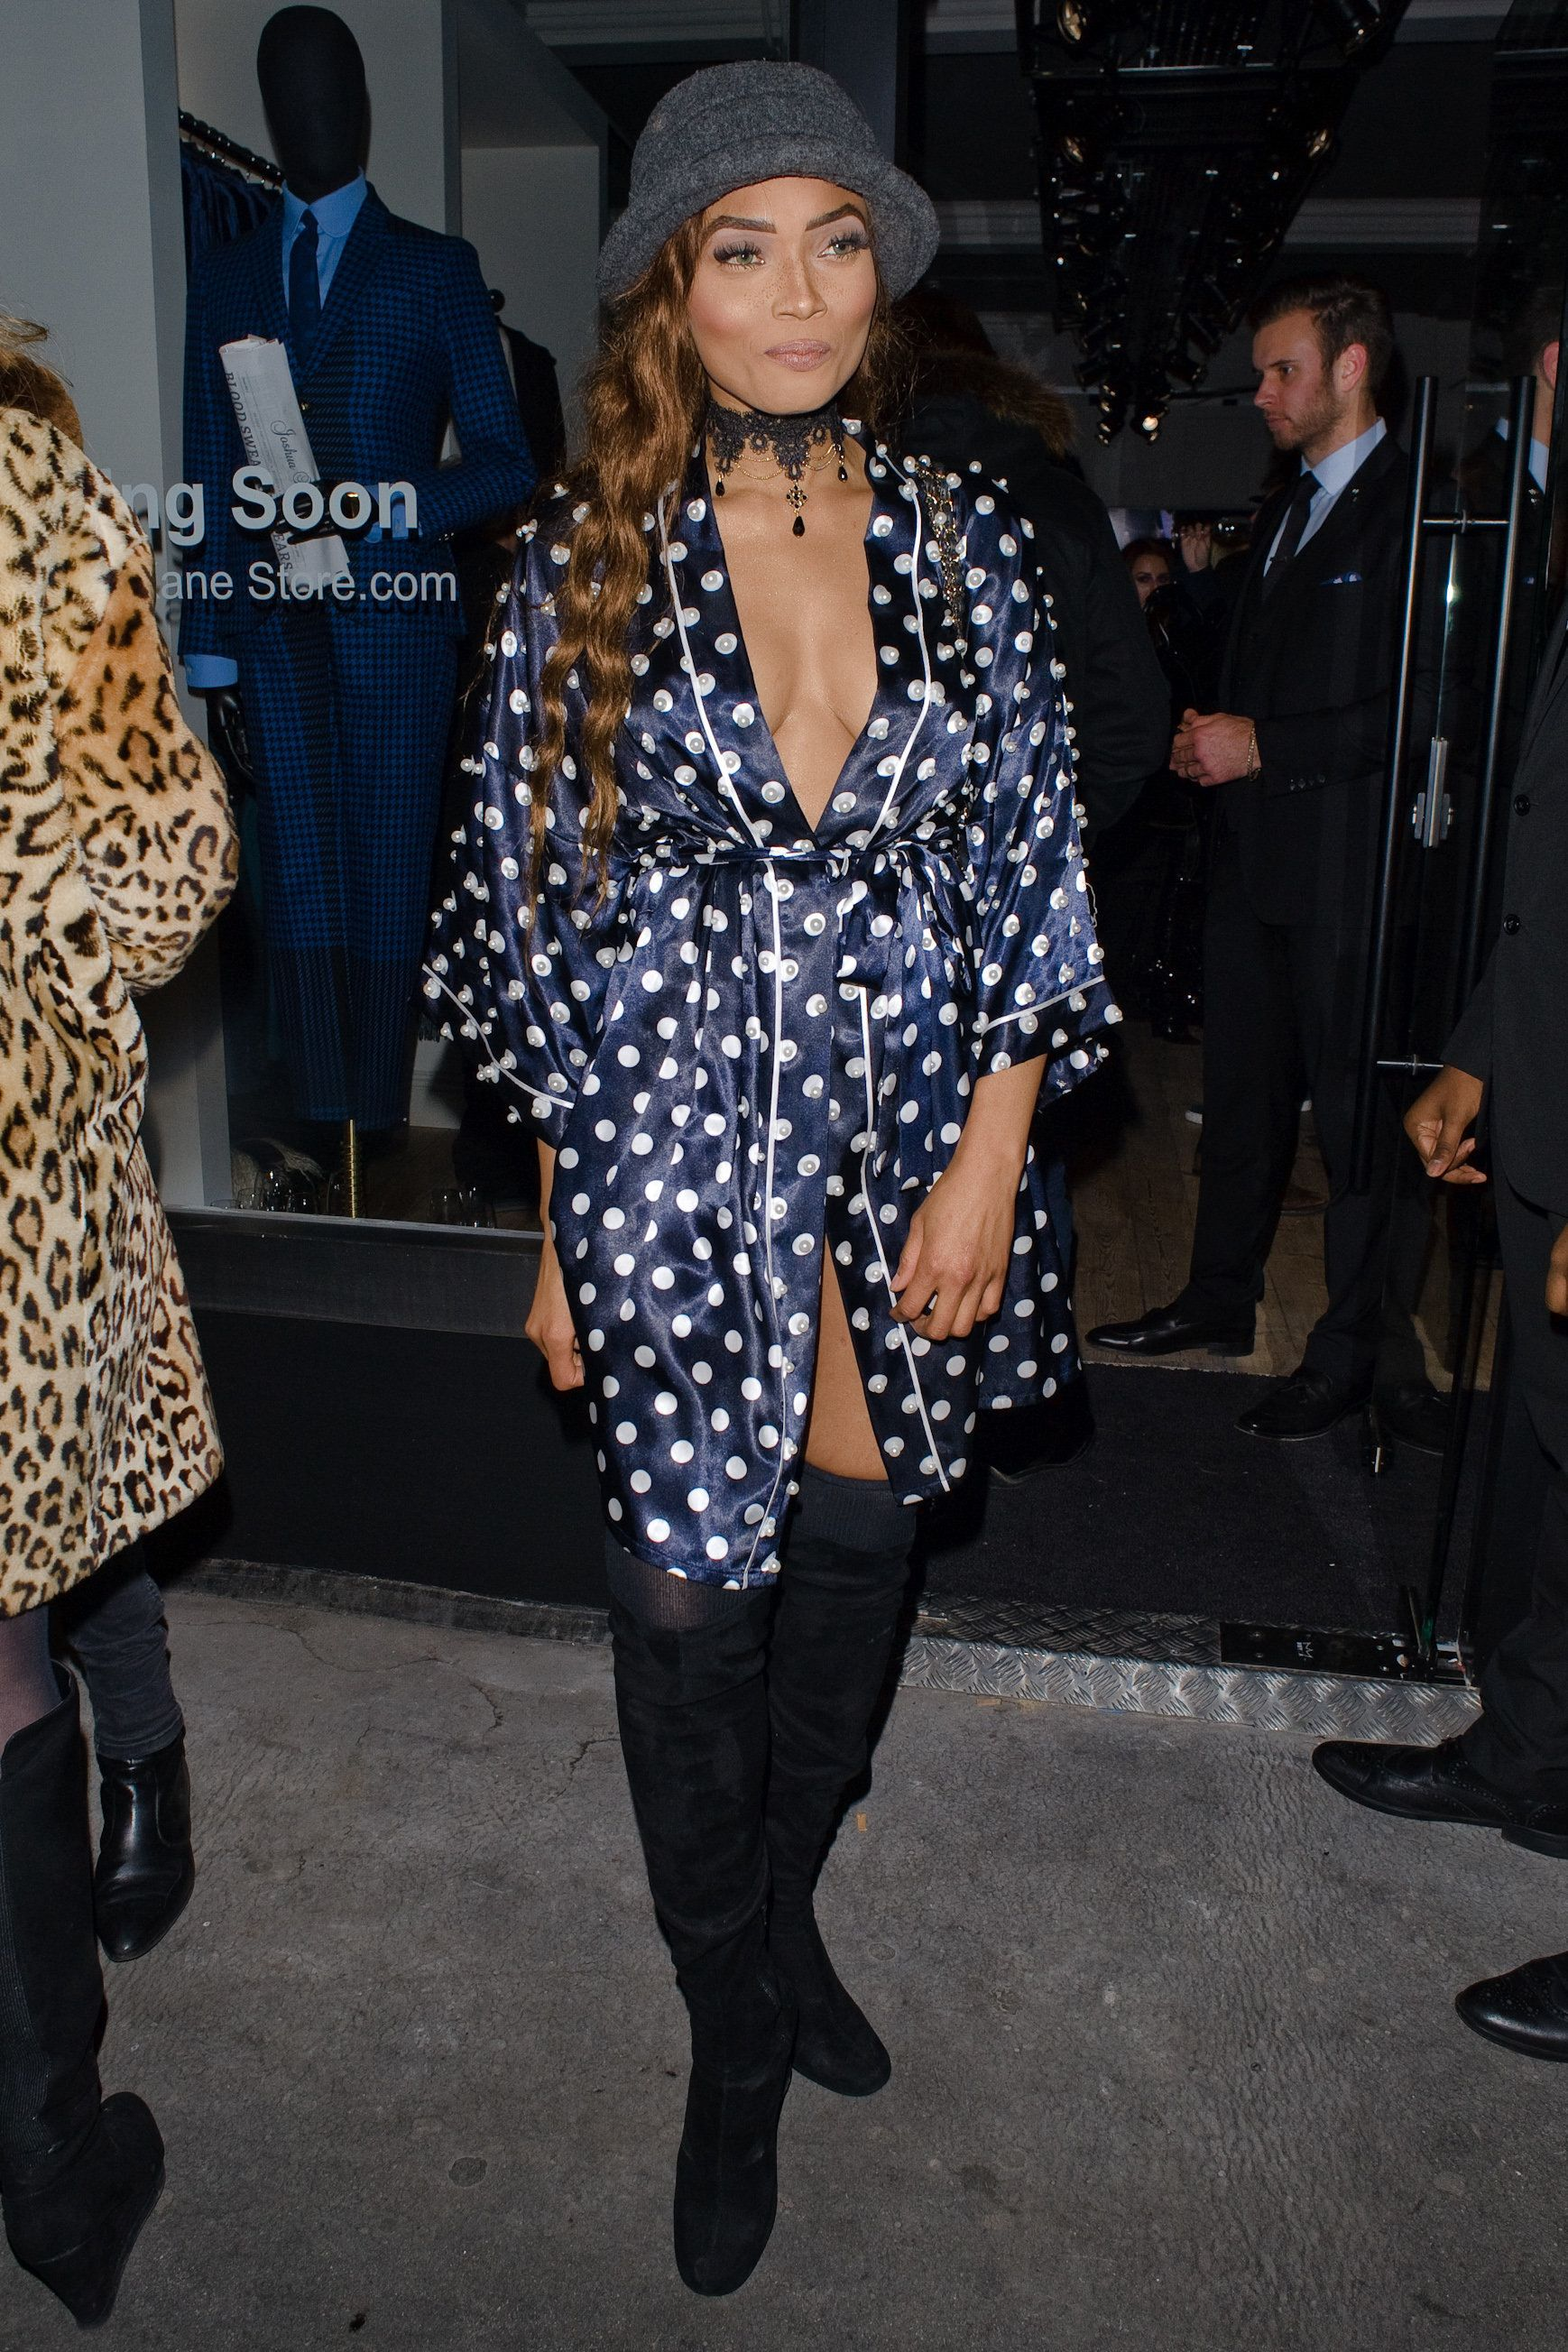 British actress Kadian Noble attends a London event in December 2016